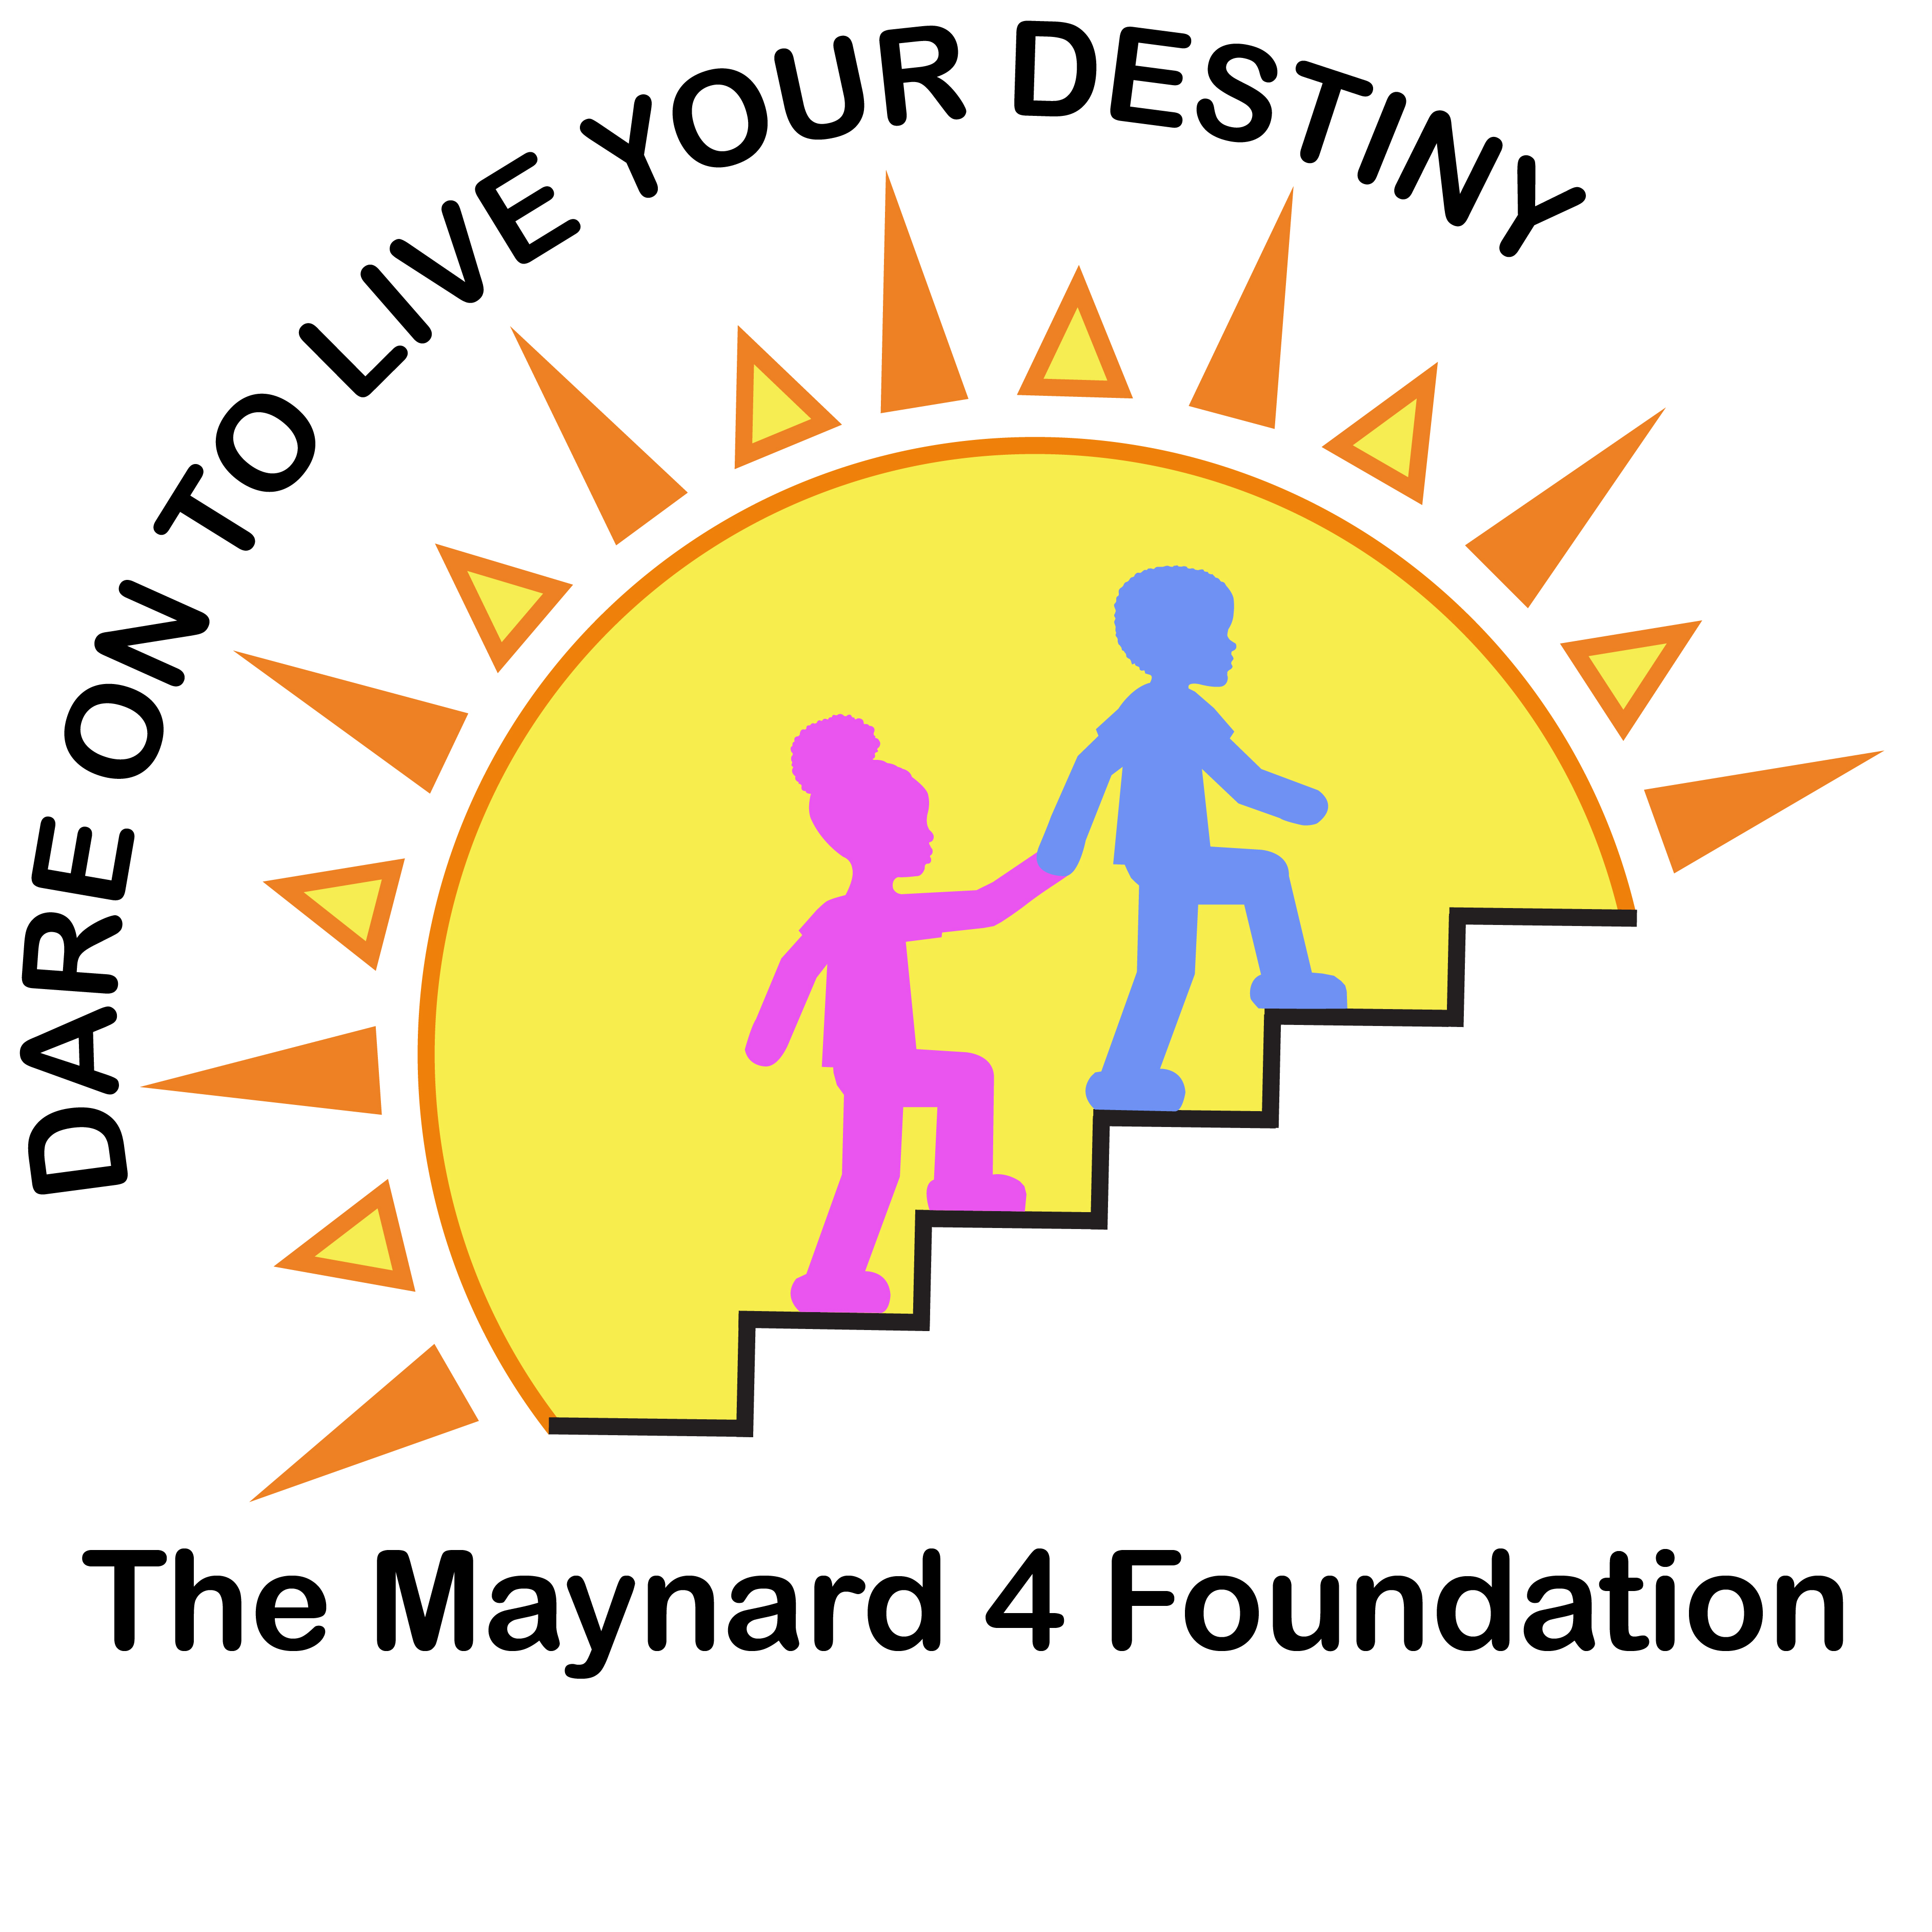 Maynard 4 Foundation Logo